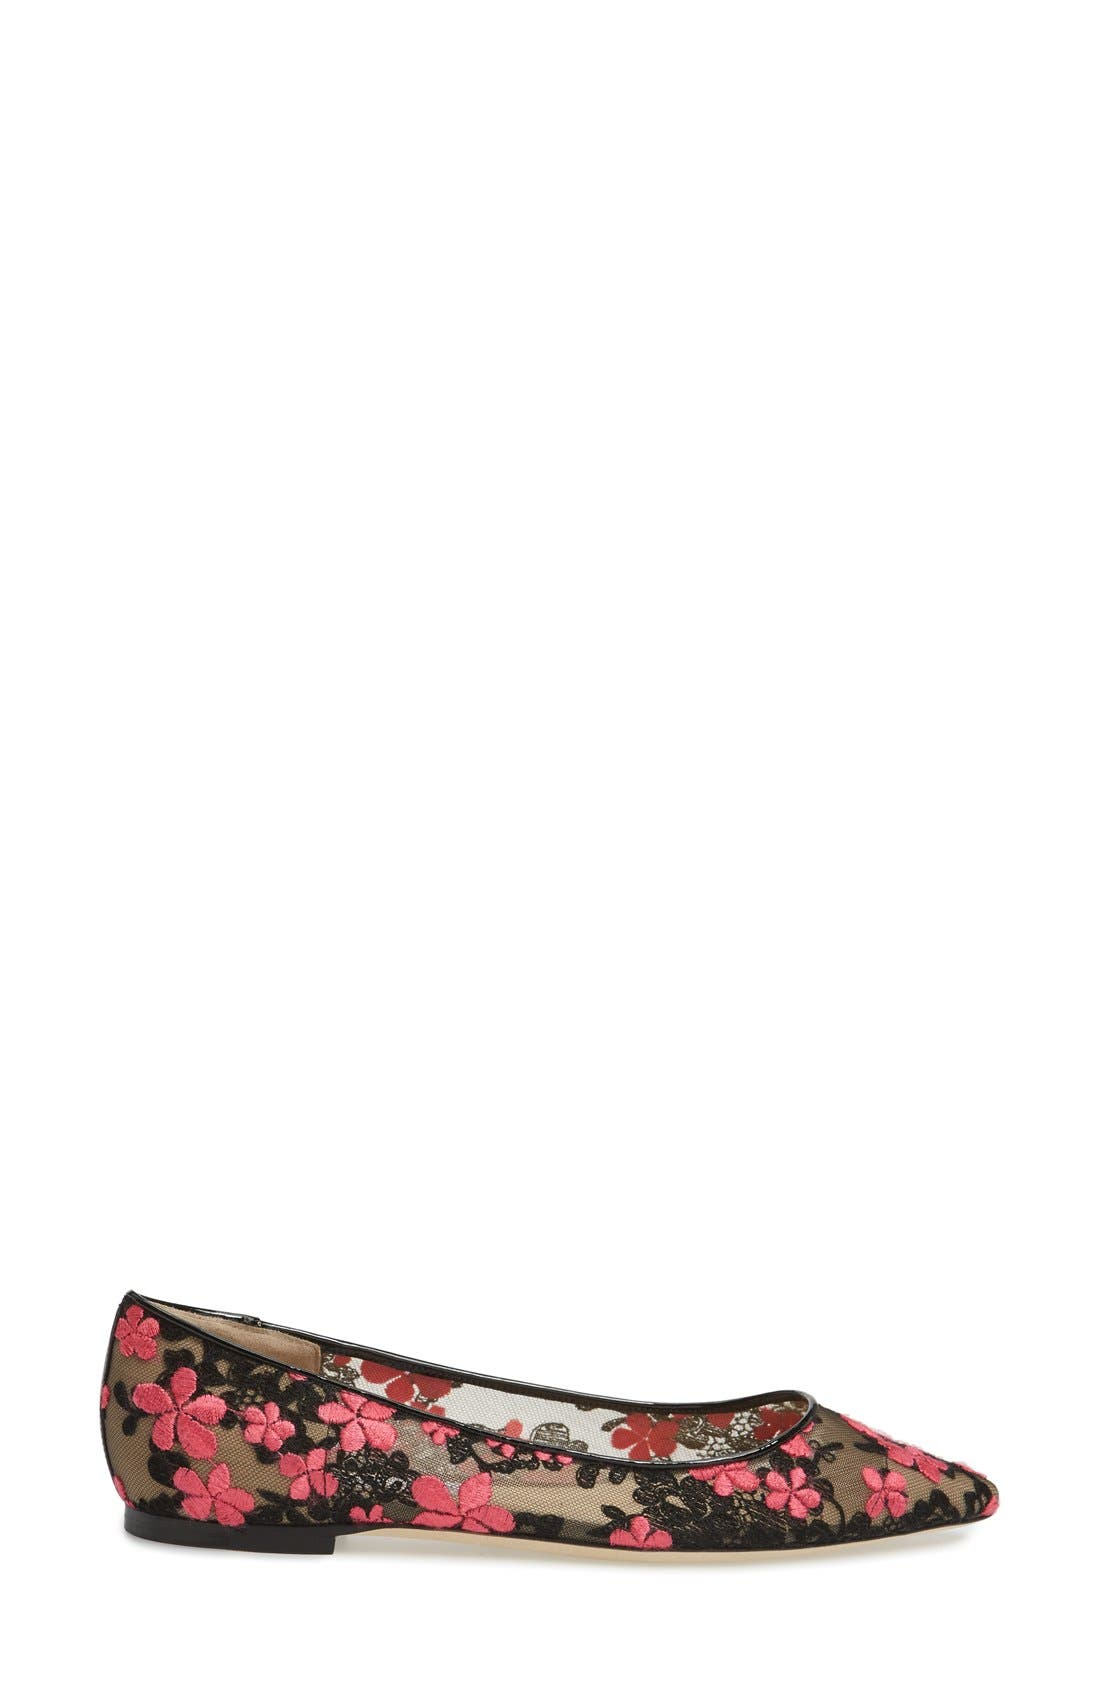 Alternate Image 4  - Jimmy Choo Romy Embroidered Floral Flat (Women)